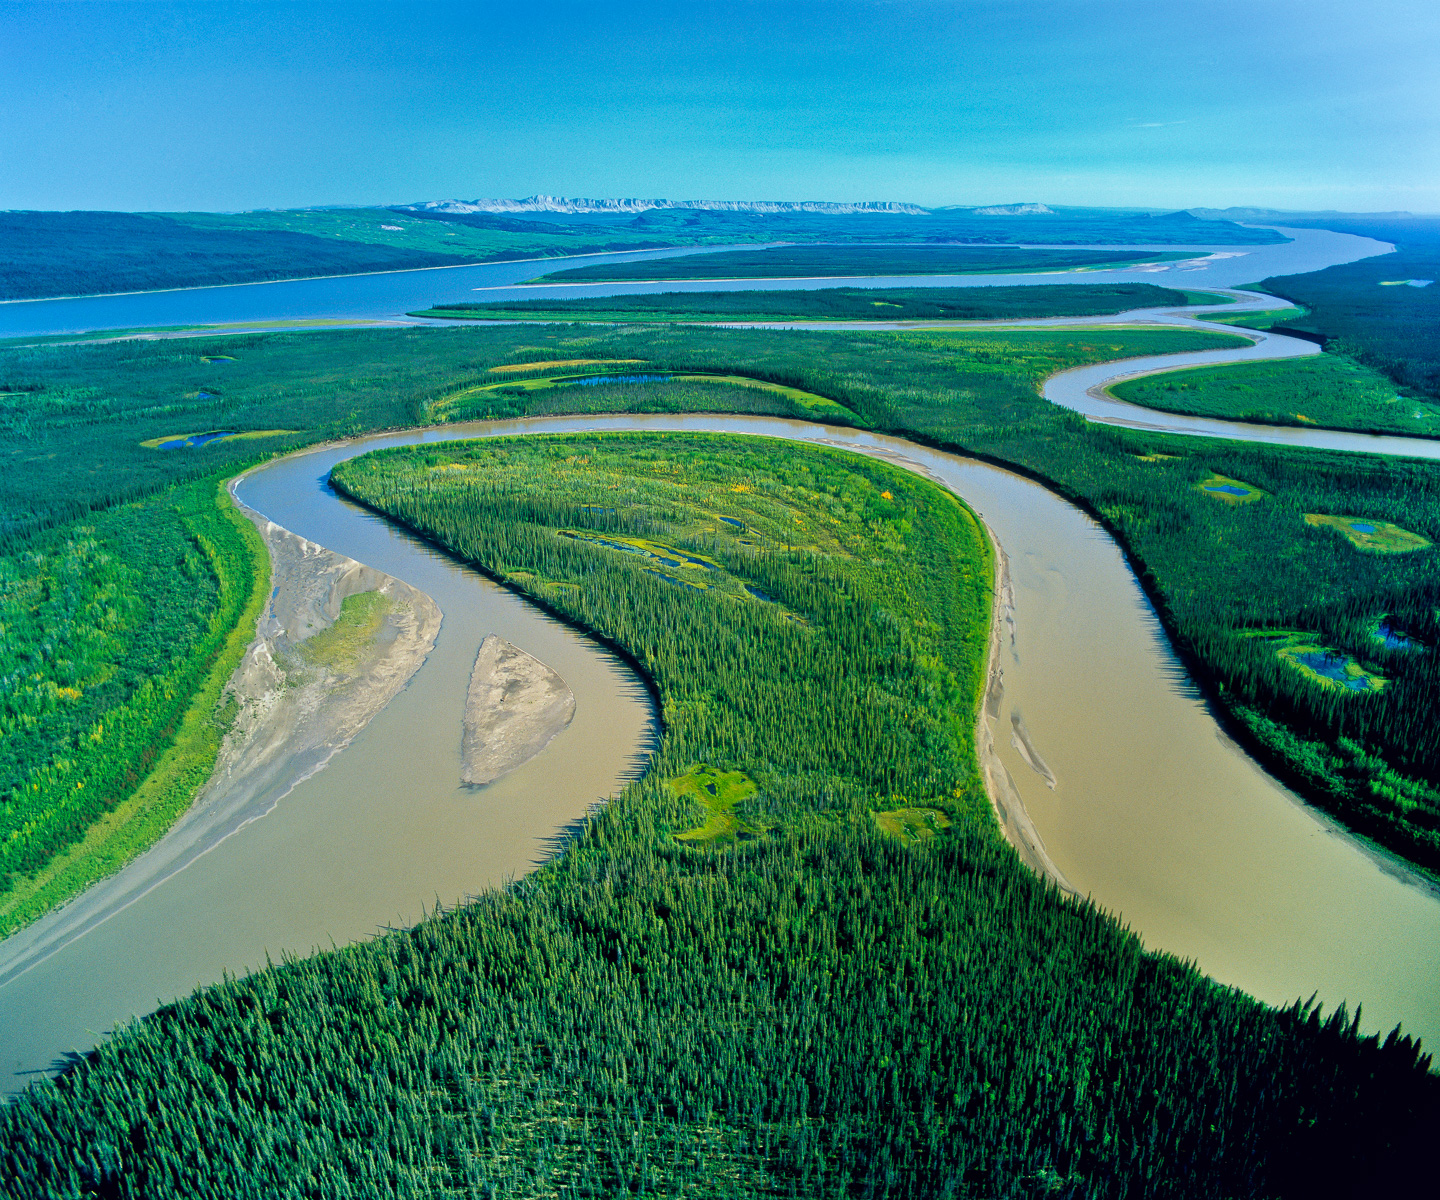 The Caracjou River winds back and forth creating this oxbow of wetlands as it joins the Mackenzie flowing north to the Beaufort Sea. This region, almost entirely pristine, is the third largest watershed basin in the world.